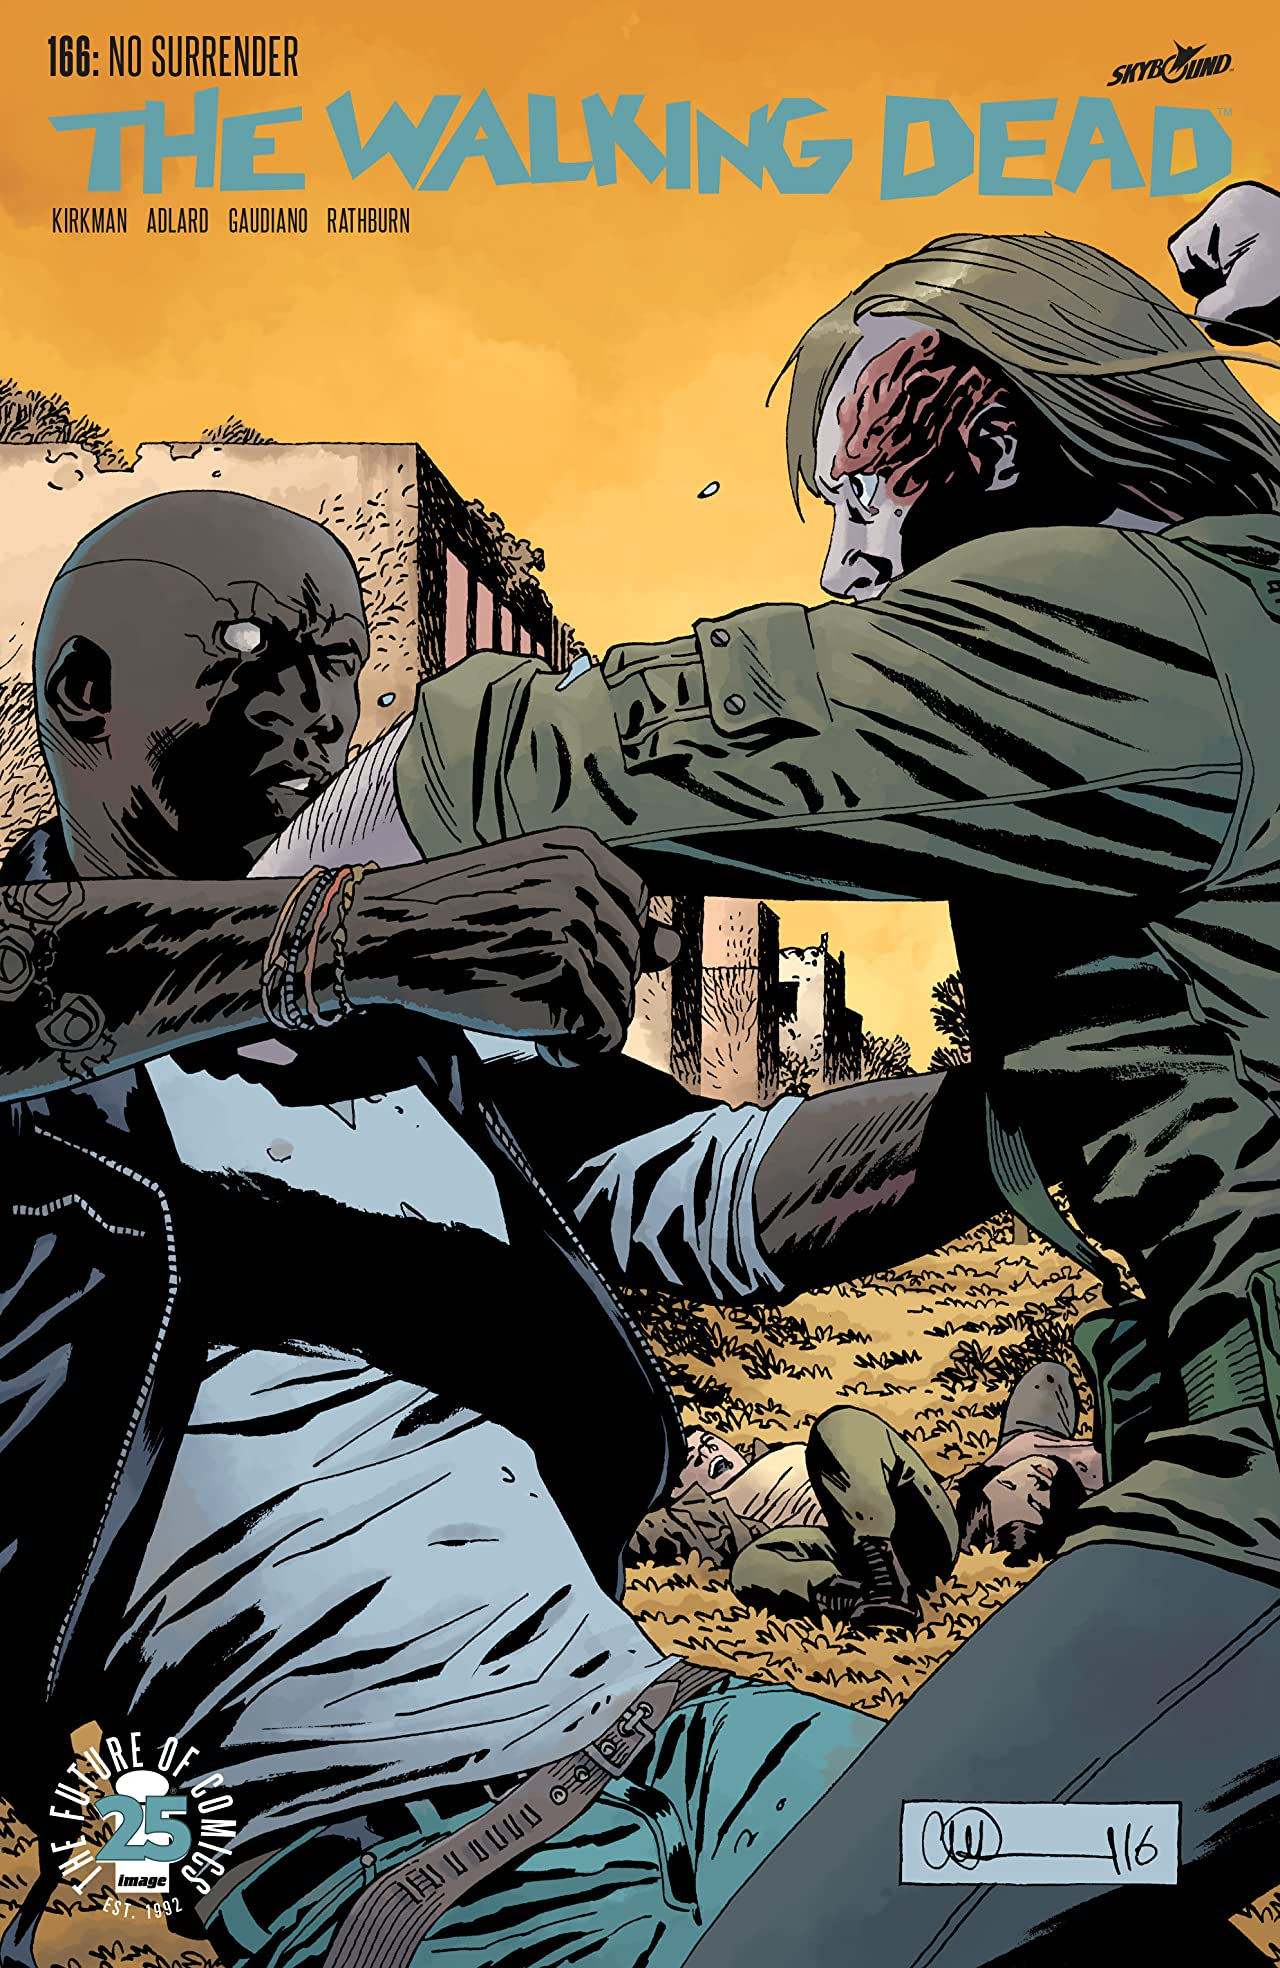 The Walking Dead #166